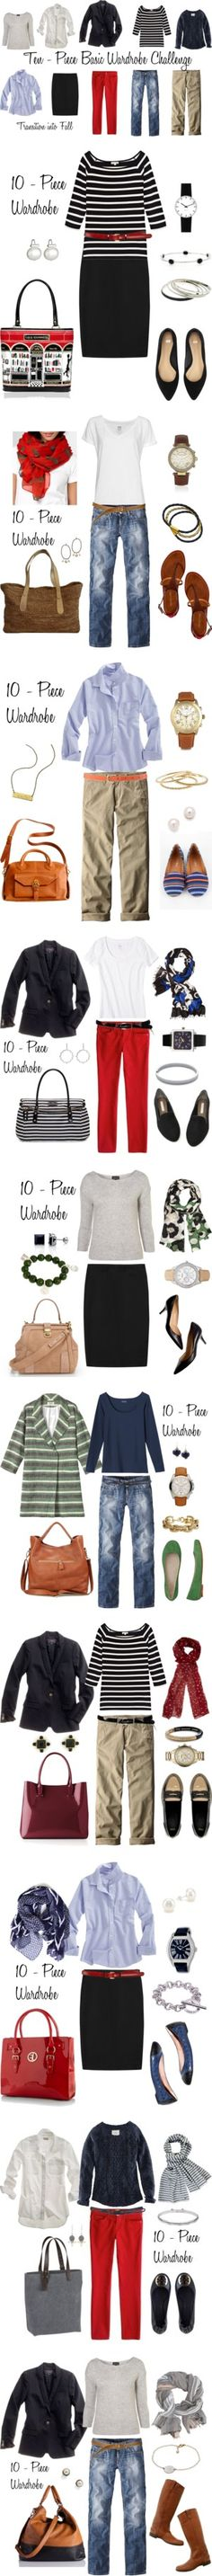 """""""Looks from the 10 - Piece Wardrobe Challenge"""" by bluehydrangea ❤ liked on Polyvore"""